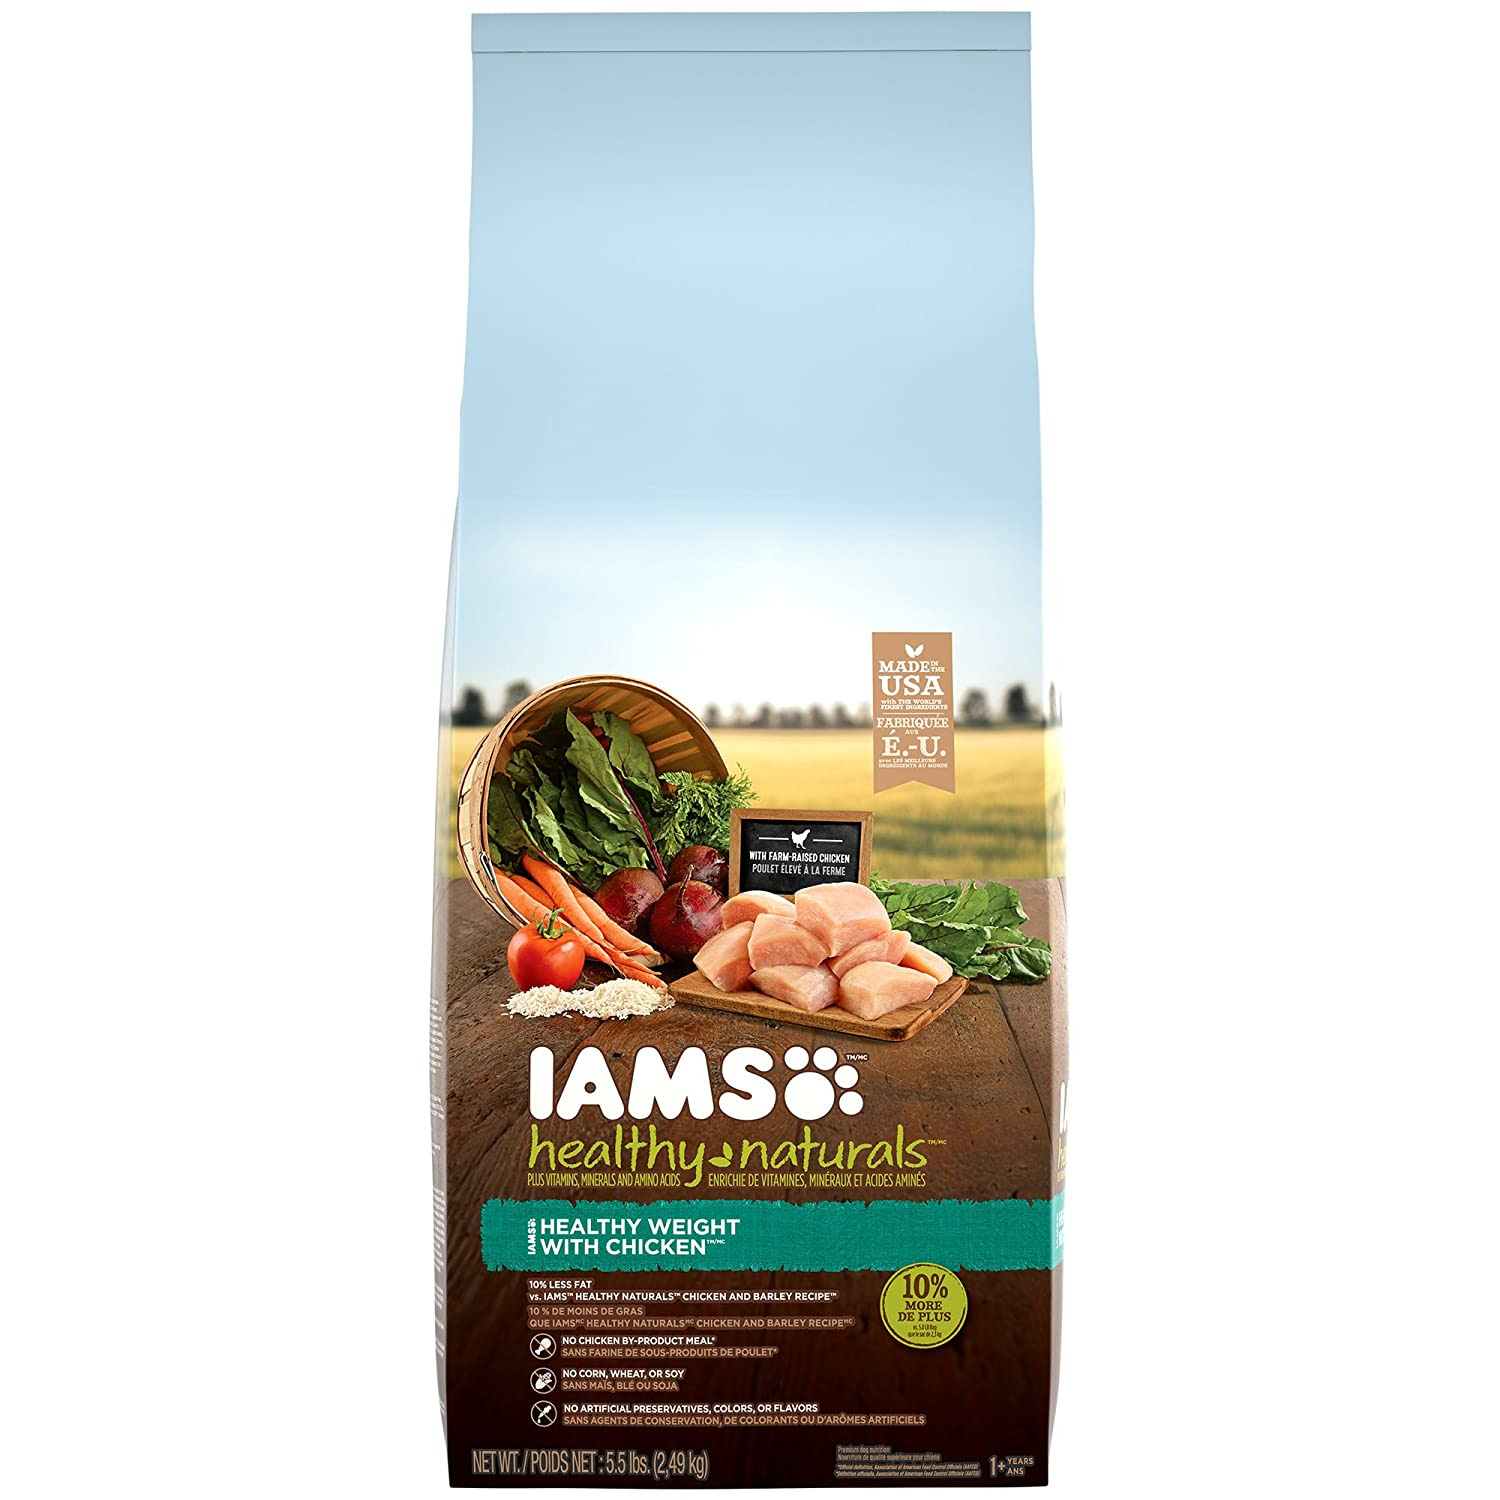 http://smile.amazon.com/HEALTHY-NATURALS-Healthy-Weight-Chicken/dp/B072LP9N7S/ref=sr_1_65?m=ATVPDKIKX0DER&s=pet-supplies&ie=UTF8&qid=1507181017&sr=1-65&refinements=p_36%3A-1000%2Cp_6%3AATVPDKIKX0DER